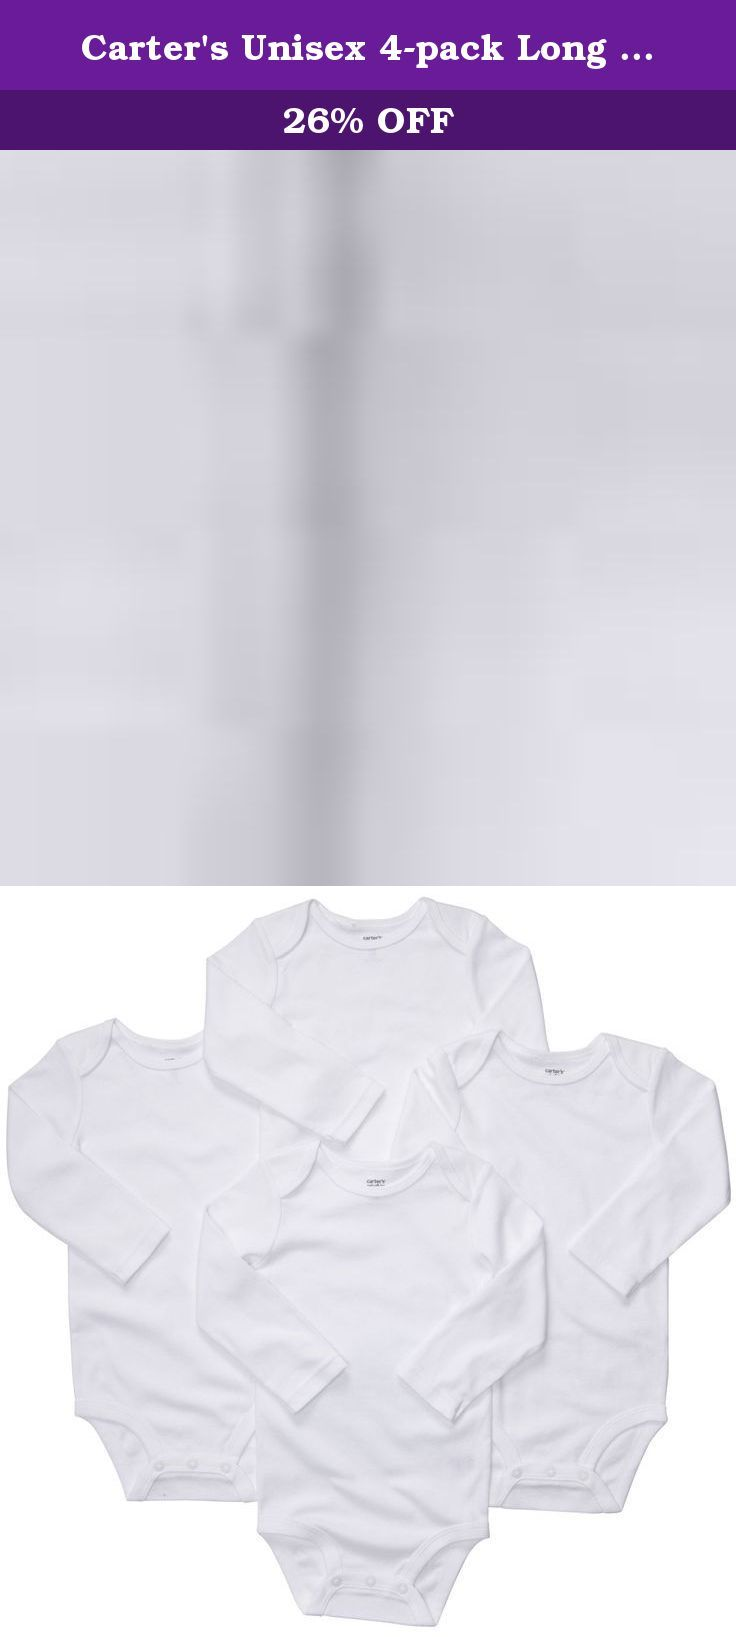 Carter's Unisex 4-pack Long Sleeve Bodysuit Set (3 Months). Classic, cotton long-sleeve bodysuits keep baby comfy and cozy. Pair with our bottoms for multiple outfits. Expandable shoulders for easy over-the-head dressing Nickel-free snaps on reinforced panel last through all of those diaper changes Silky soft cotton keeps baby comfy. No-scratch tag-free label. Newborn sizes have mitts at the cuffs.